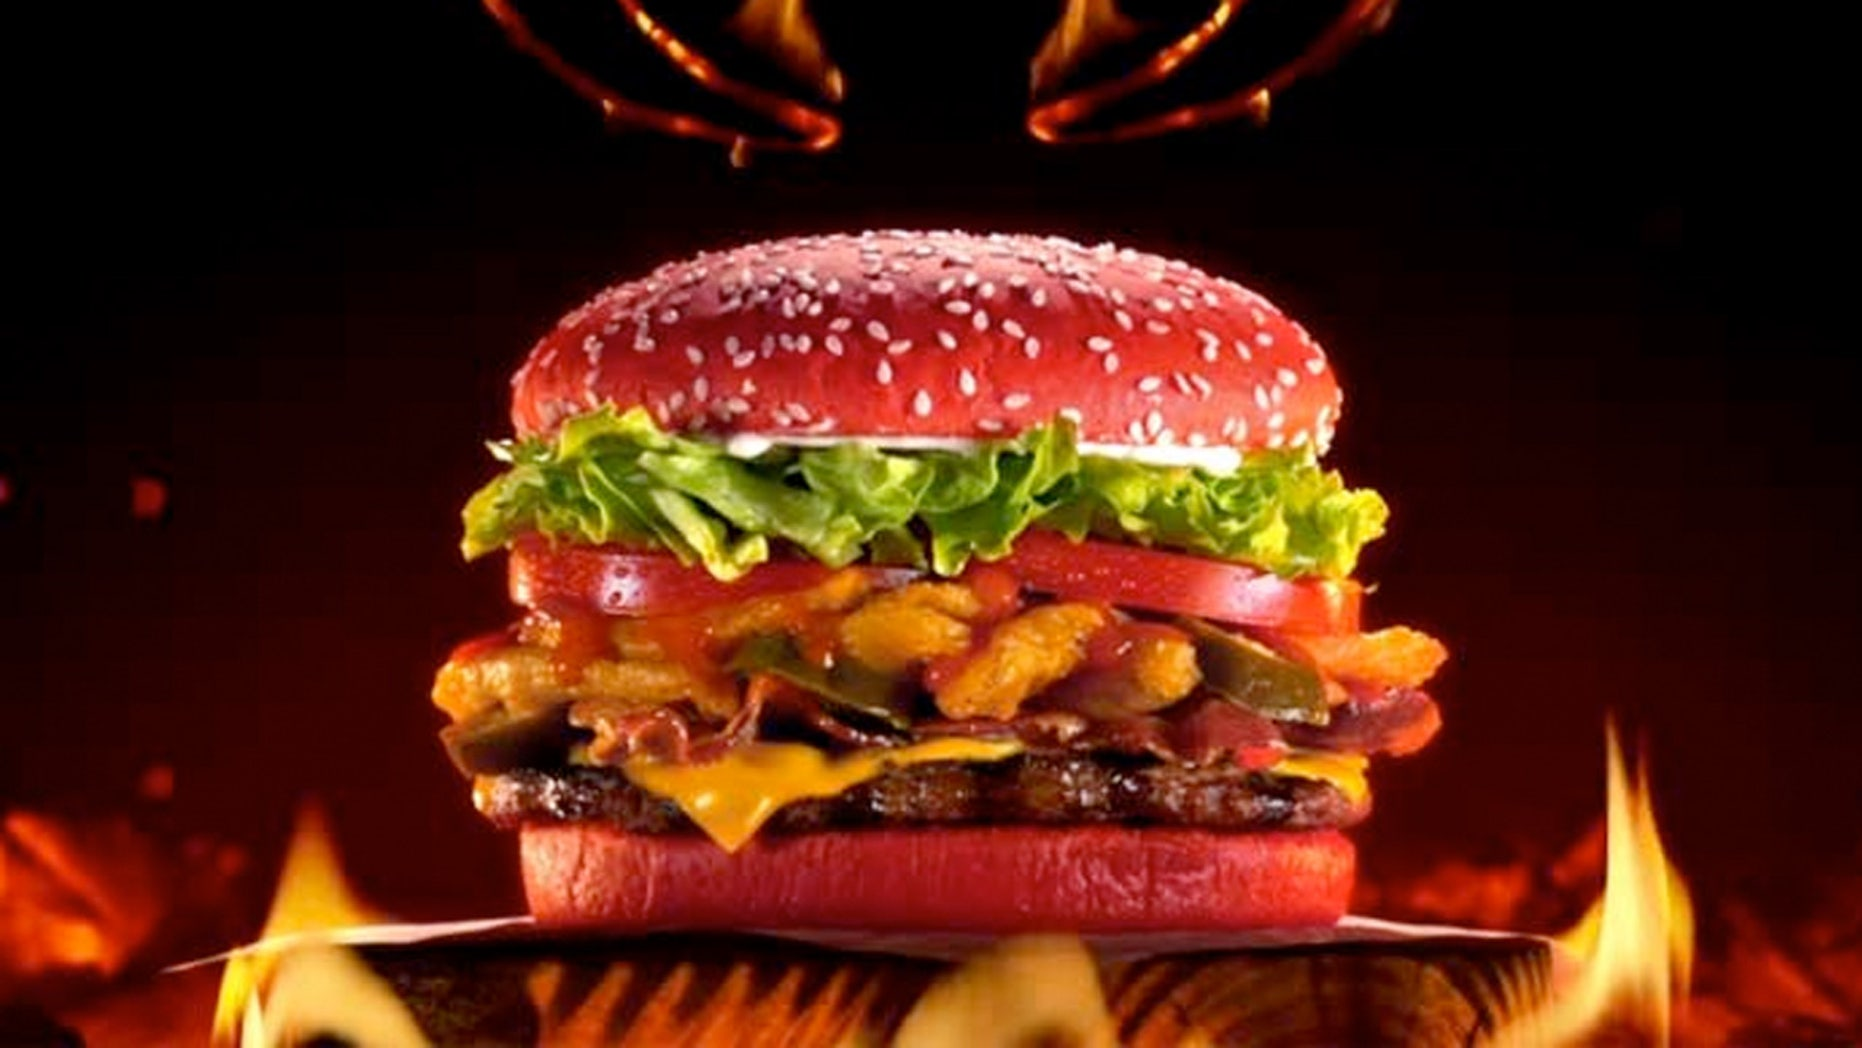 """The Angriest Whopper will consist of """"flame-grilled beef, piled high with thick-cut bacon, American cheese, iceberg lettuce, tomatoes, crispy onion petals, jalapeños, creamy mayonnaise and spicy angry sauce all layered between a fiery red bun that has hot sauced baked in."""